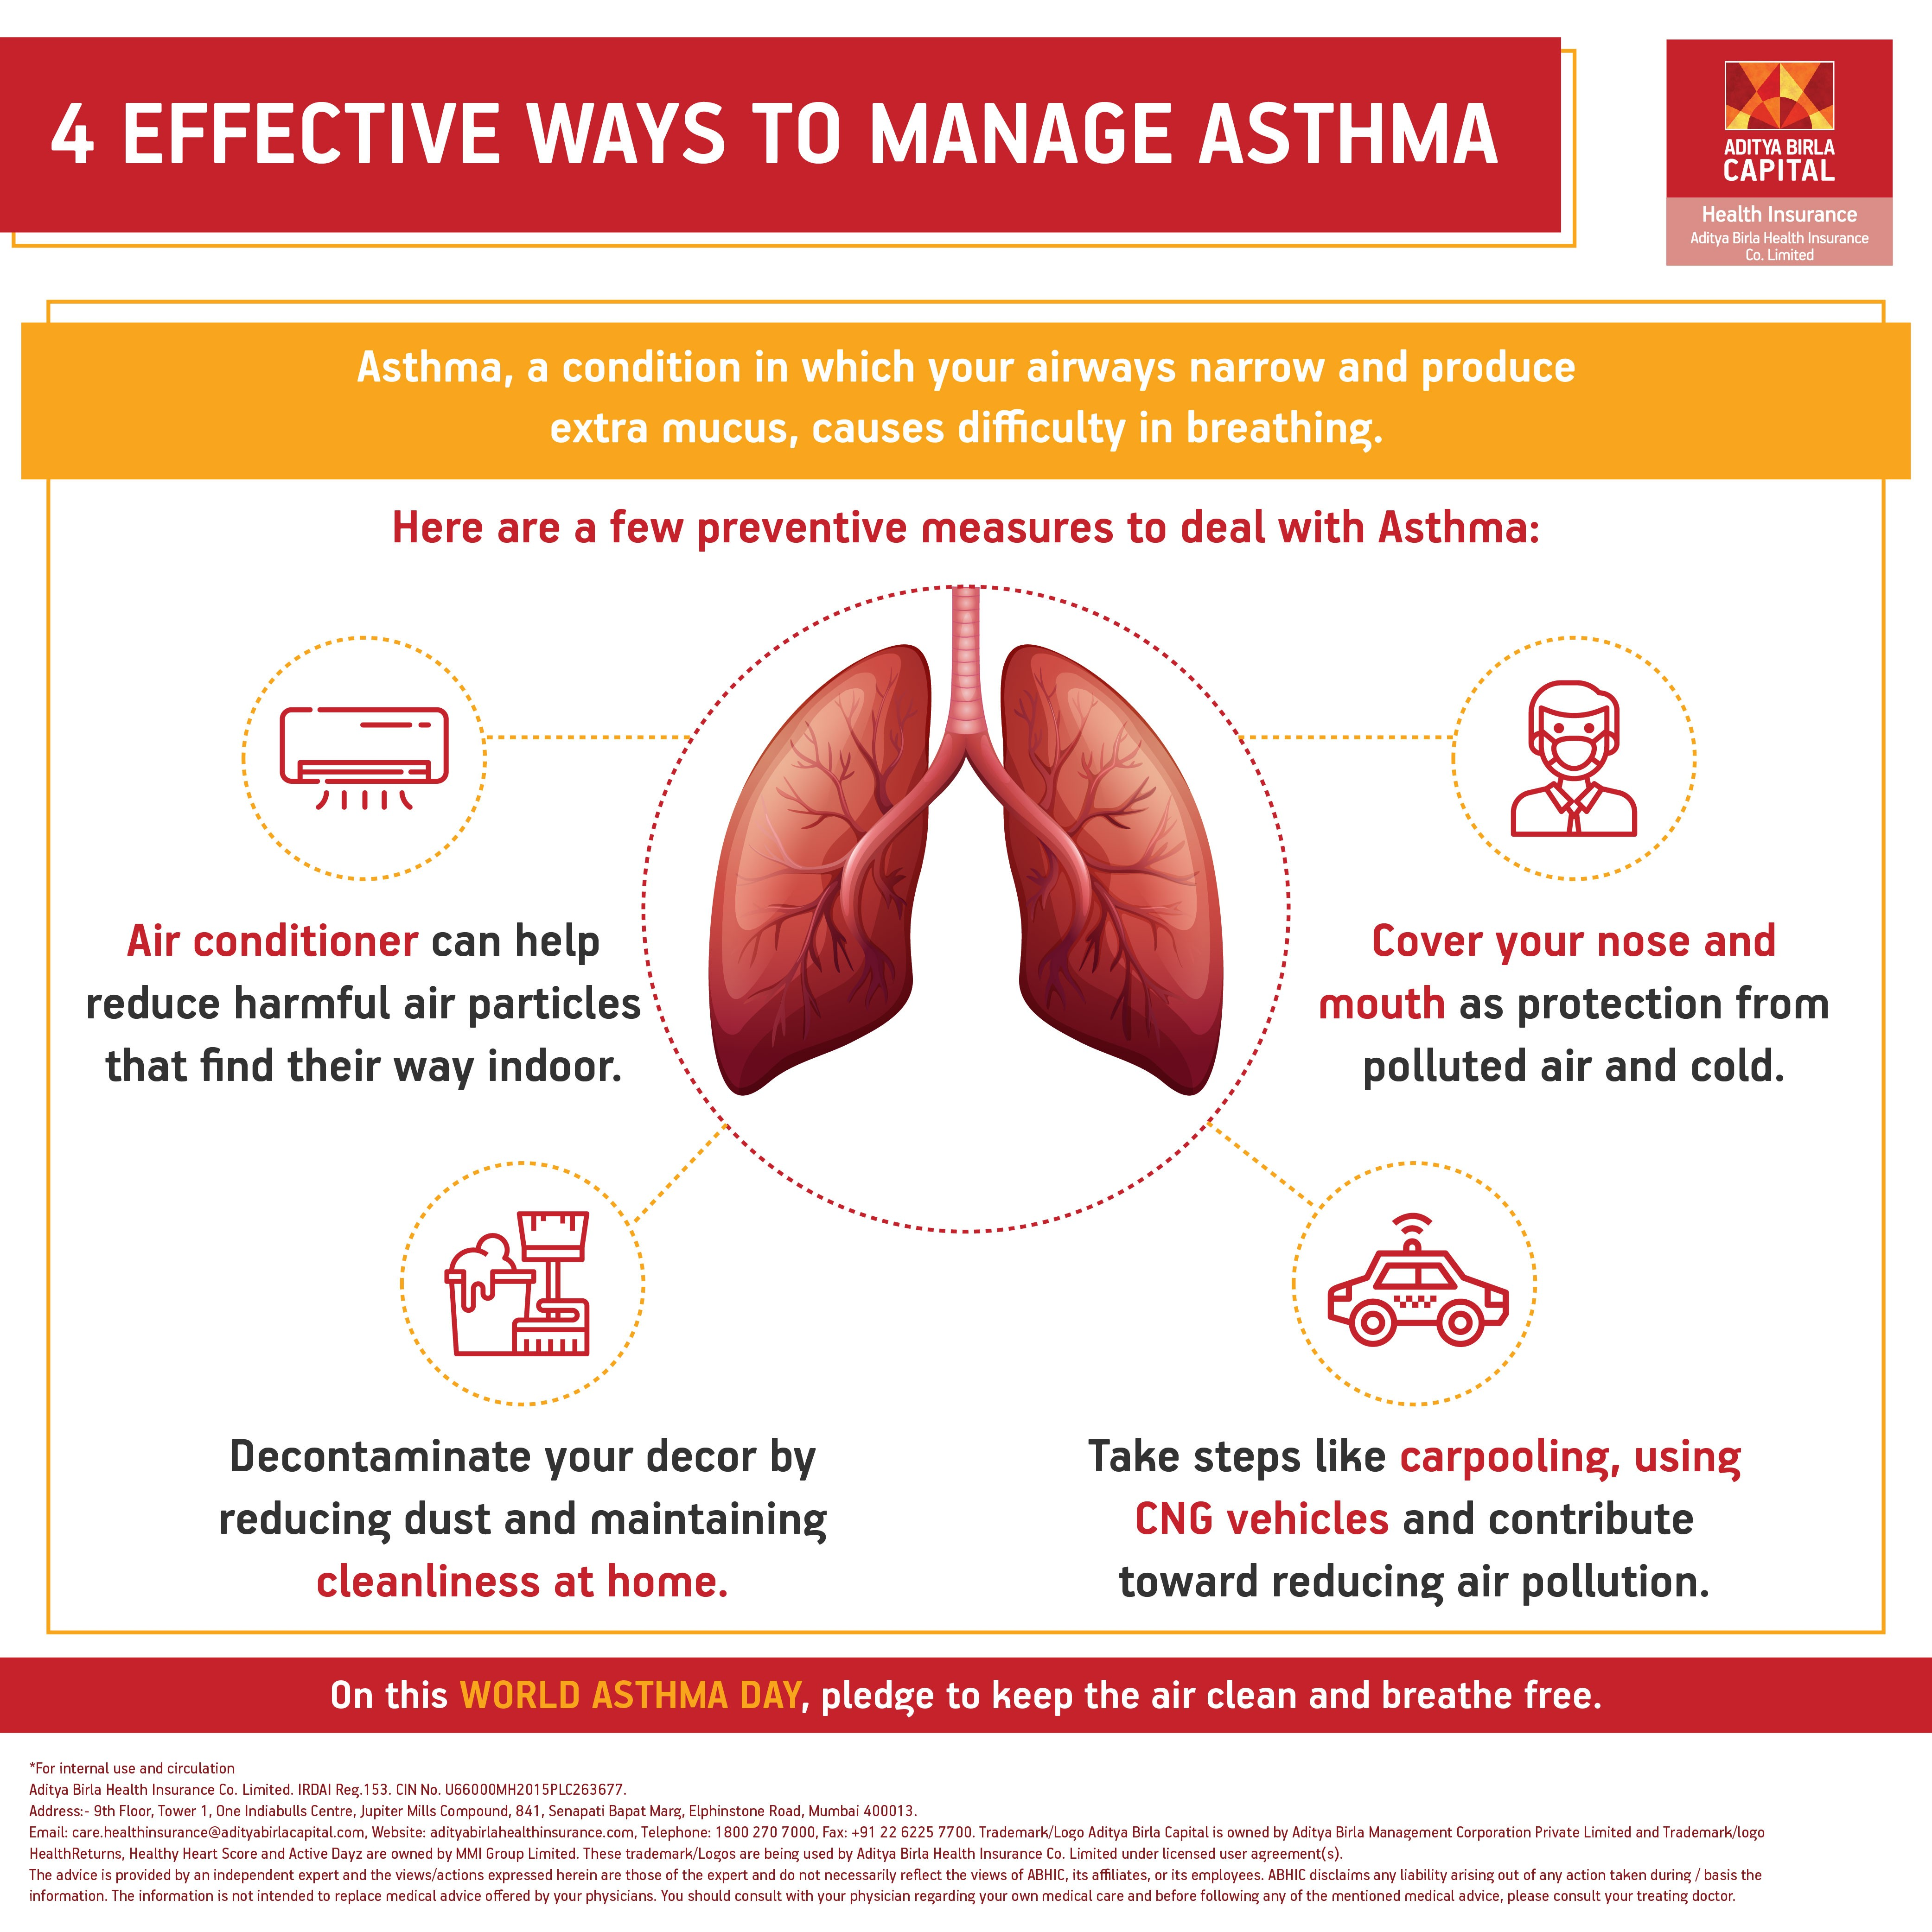 Precautions to Control & Manage Asthma